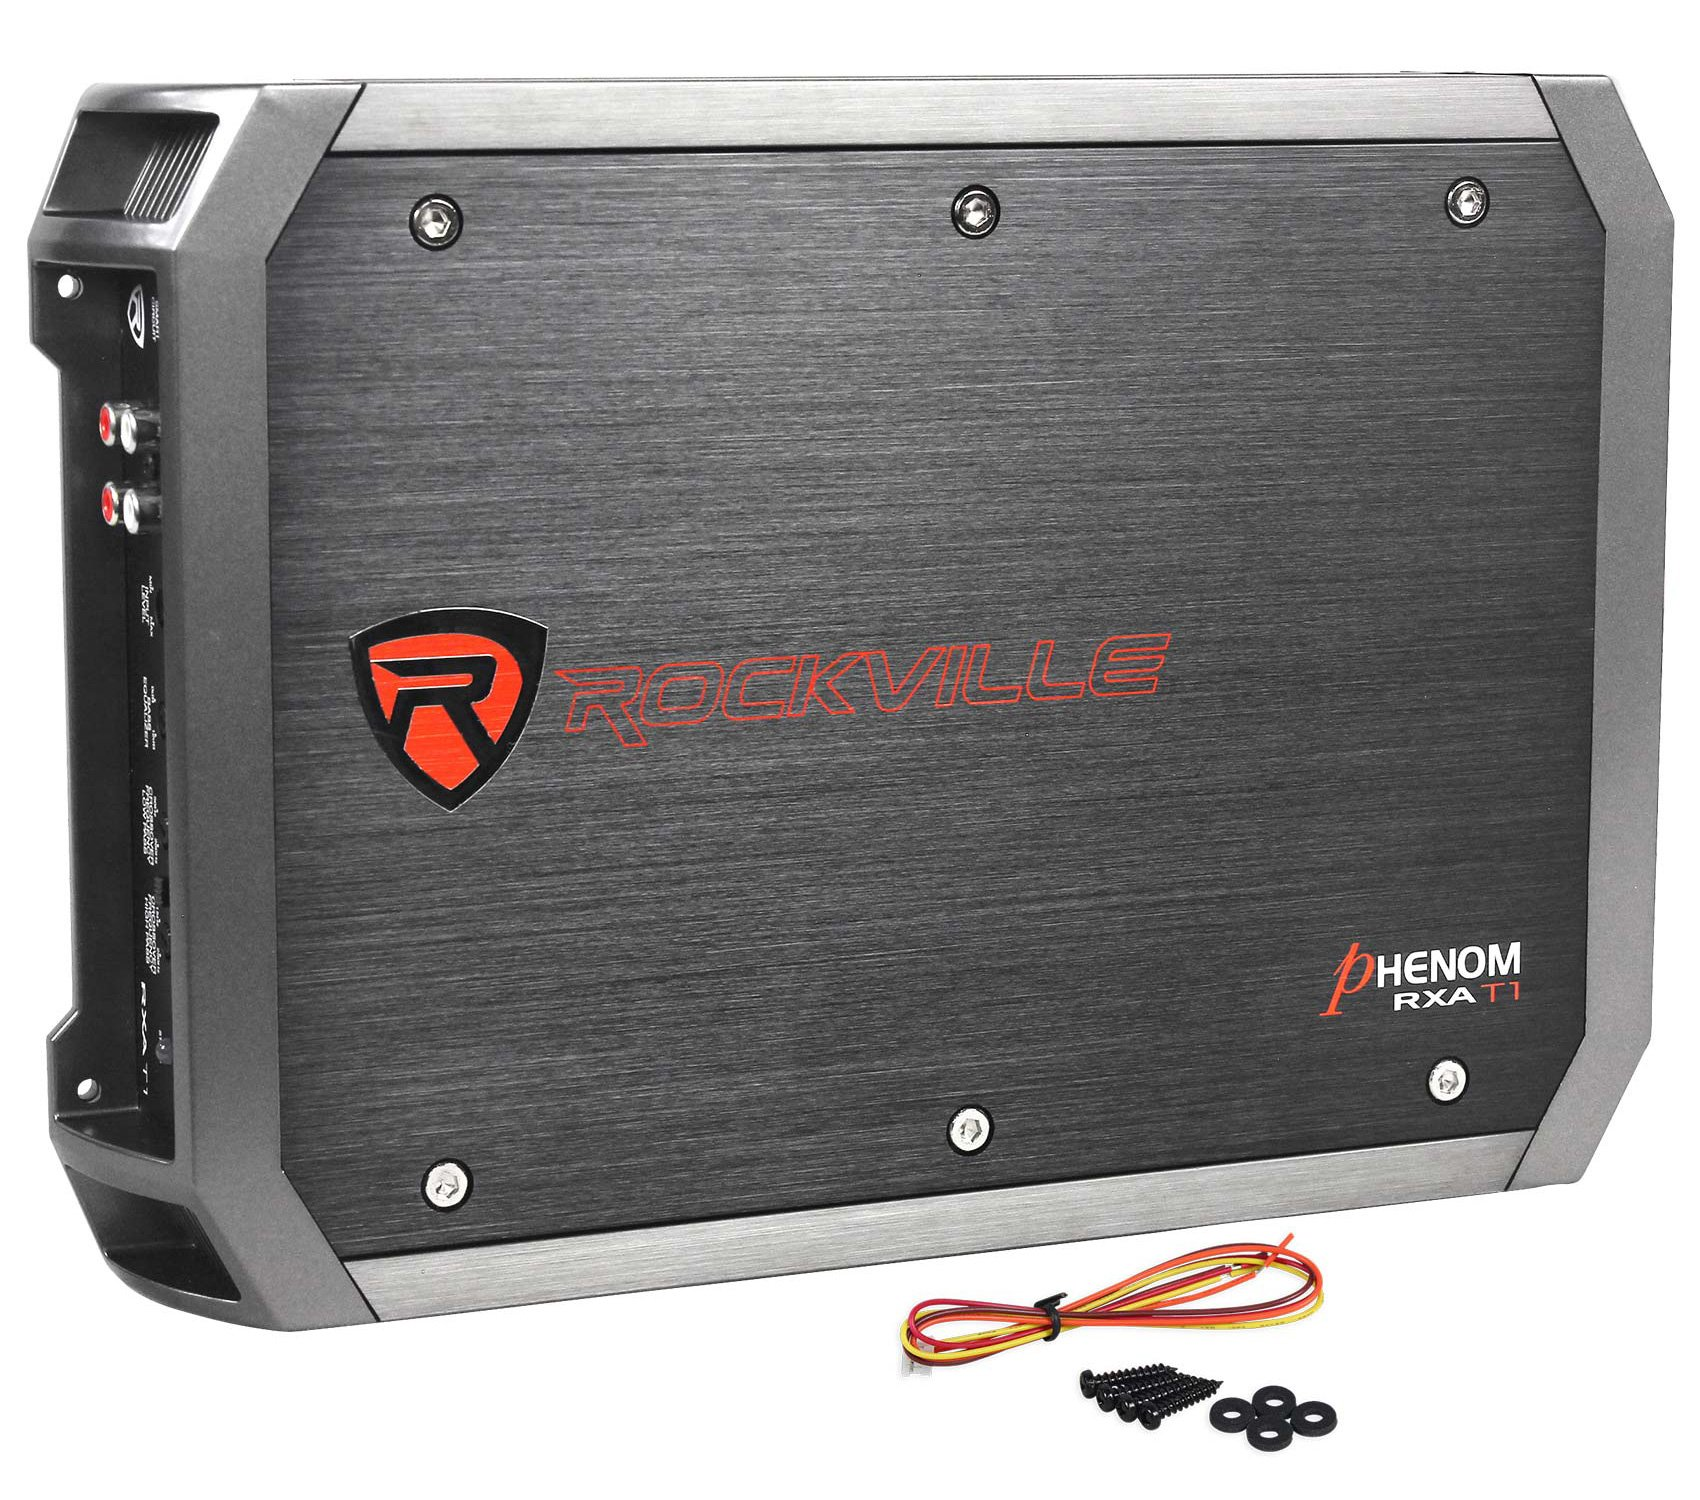 New Rockville RXA-T1 1500 Watt Peak/750w RMS 2 Channel Amplifier Car Stereo Amp